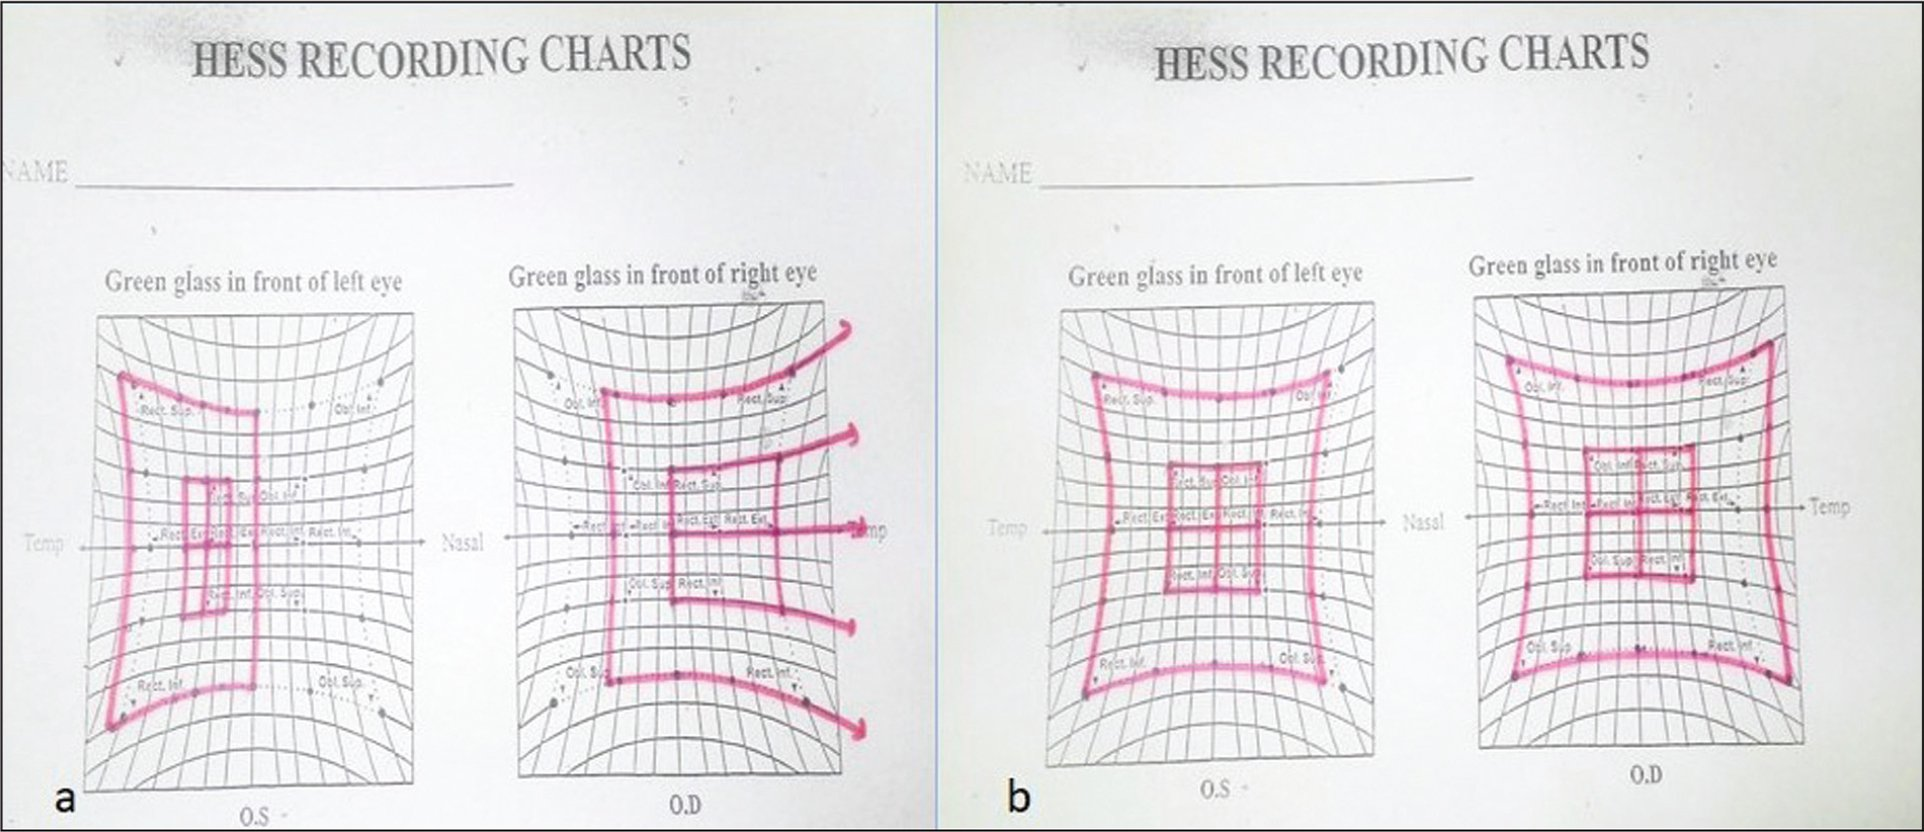 (A) Preoperative Hess chart shows underaction of the left medial rectus muscle and overaction of the right lateral rectus muscle. (B) Postoperative Hess chart shows no limitation of extraocular movements.